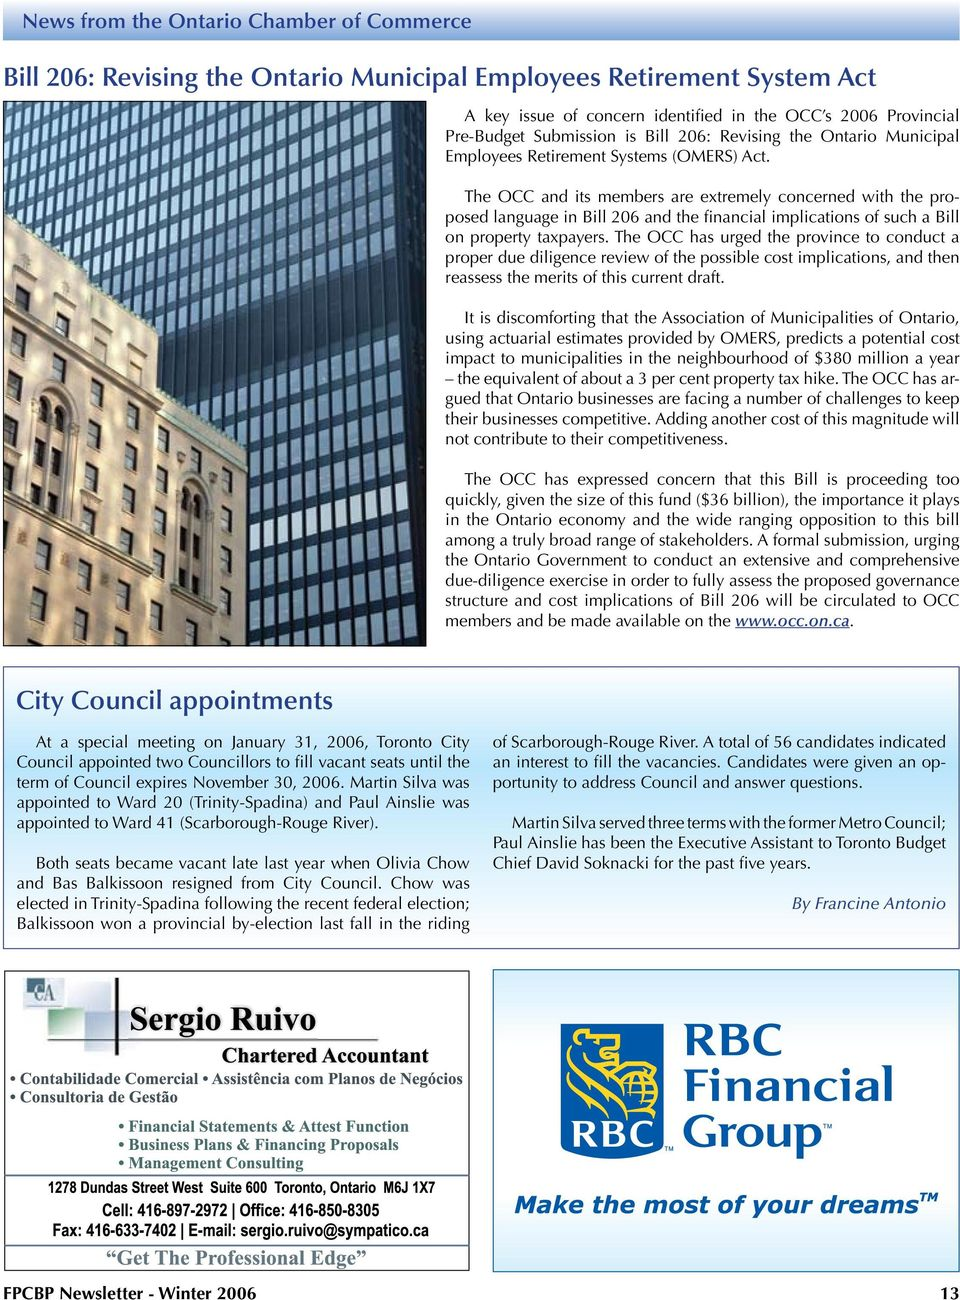 The OCC and its members are extremely concerned with the proposed language in Bill 206 and the financial implications of such a Bill on property taxpayers.